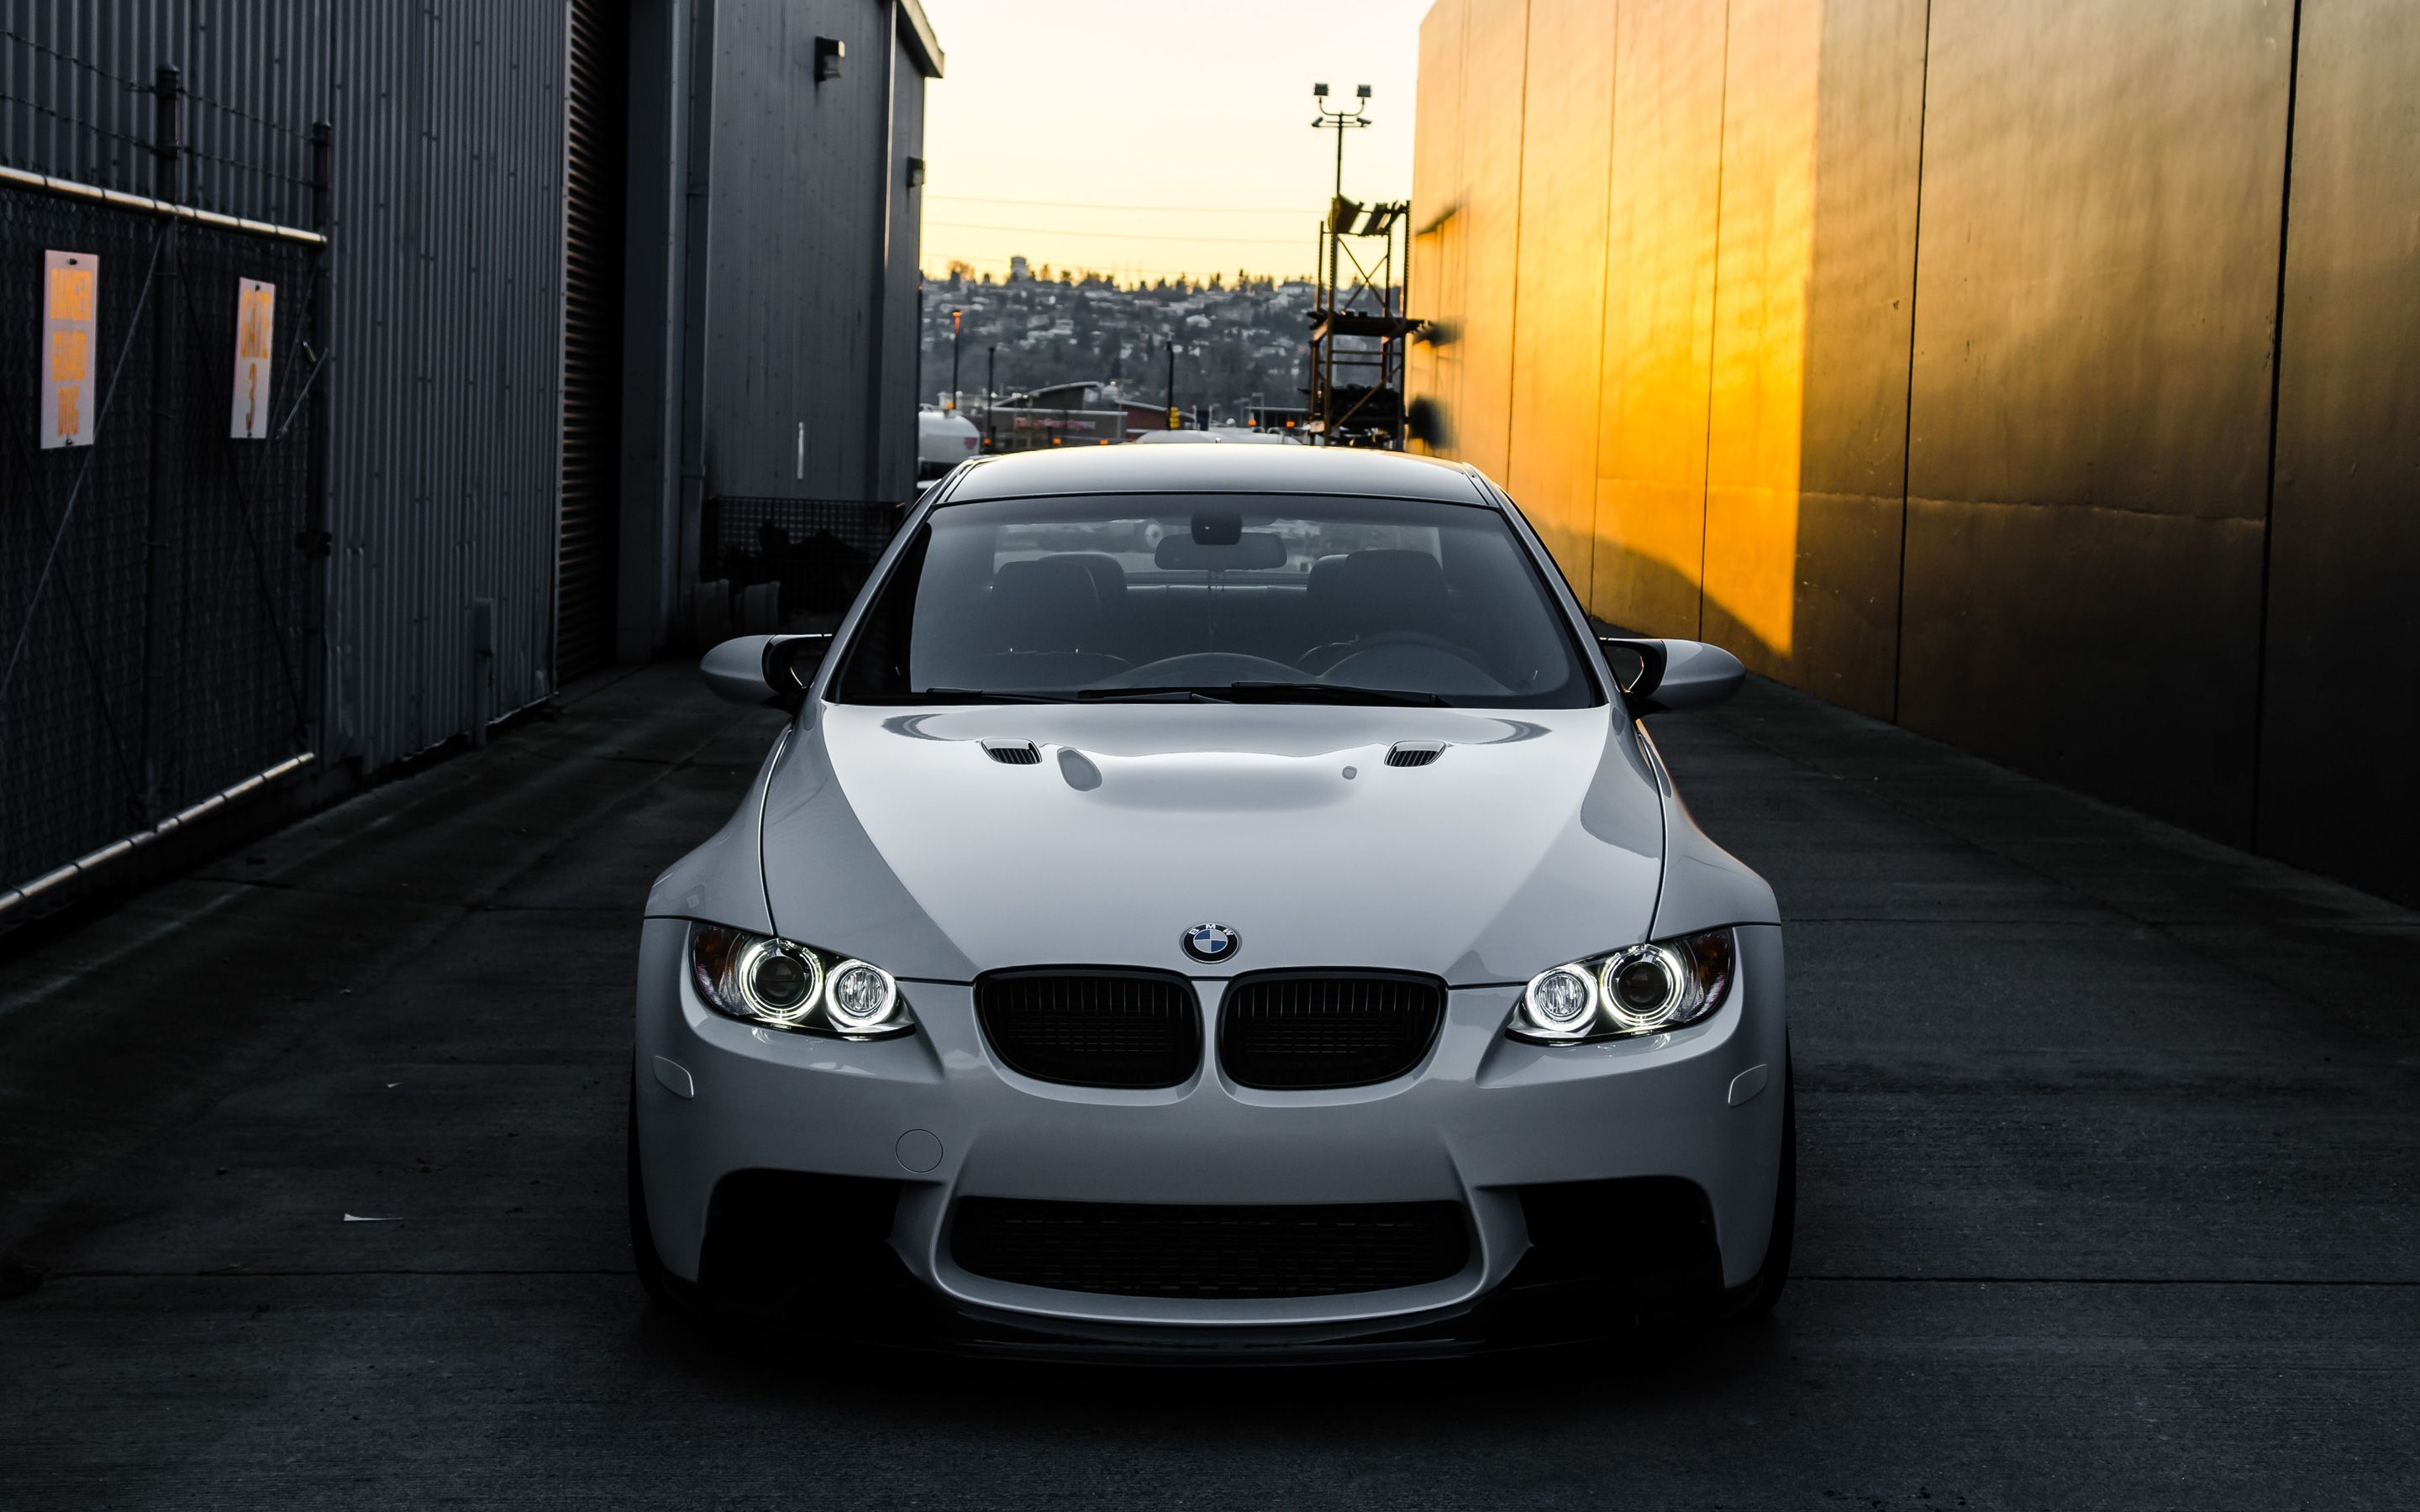 Bmw M3 Wallpaper Posted By Sarah Thompson